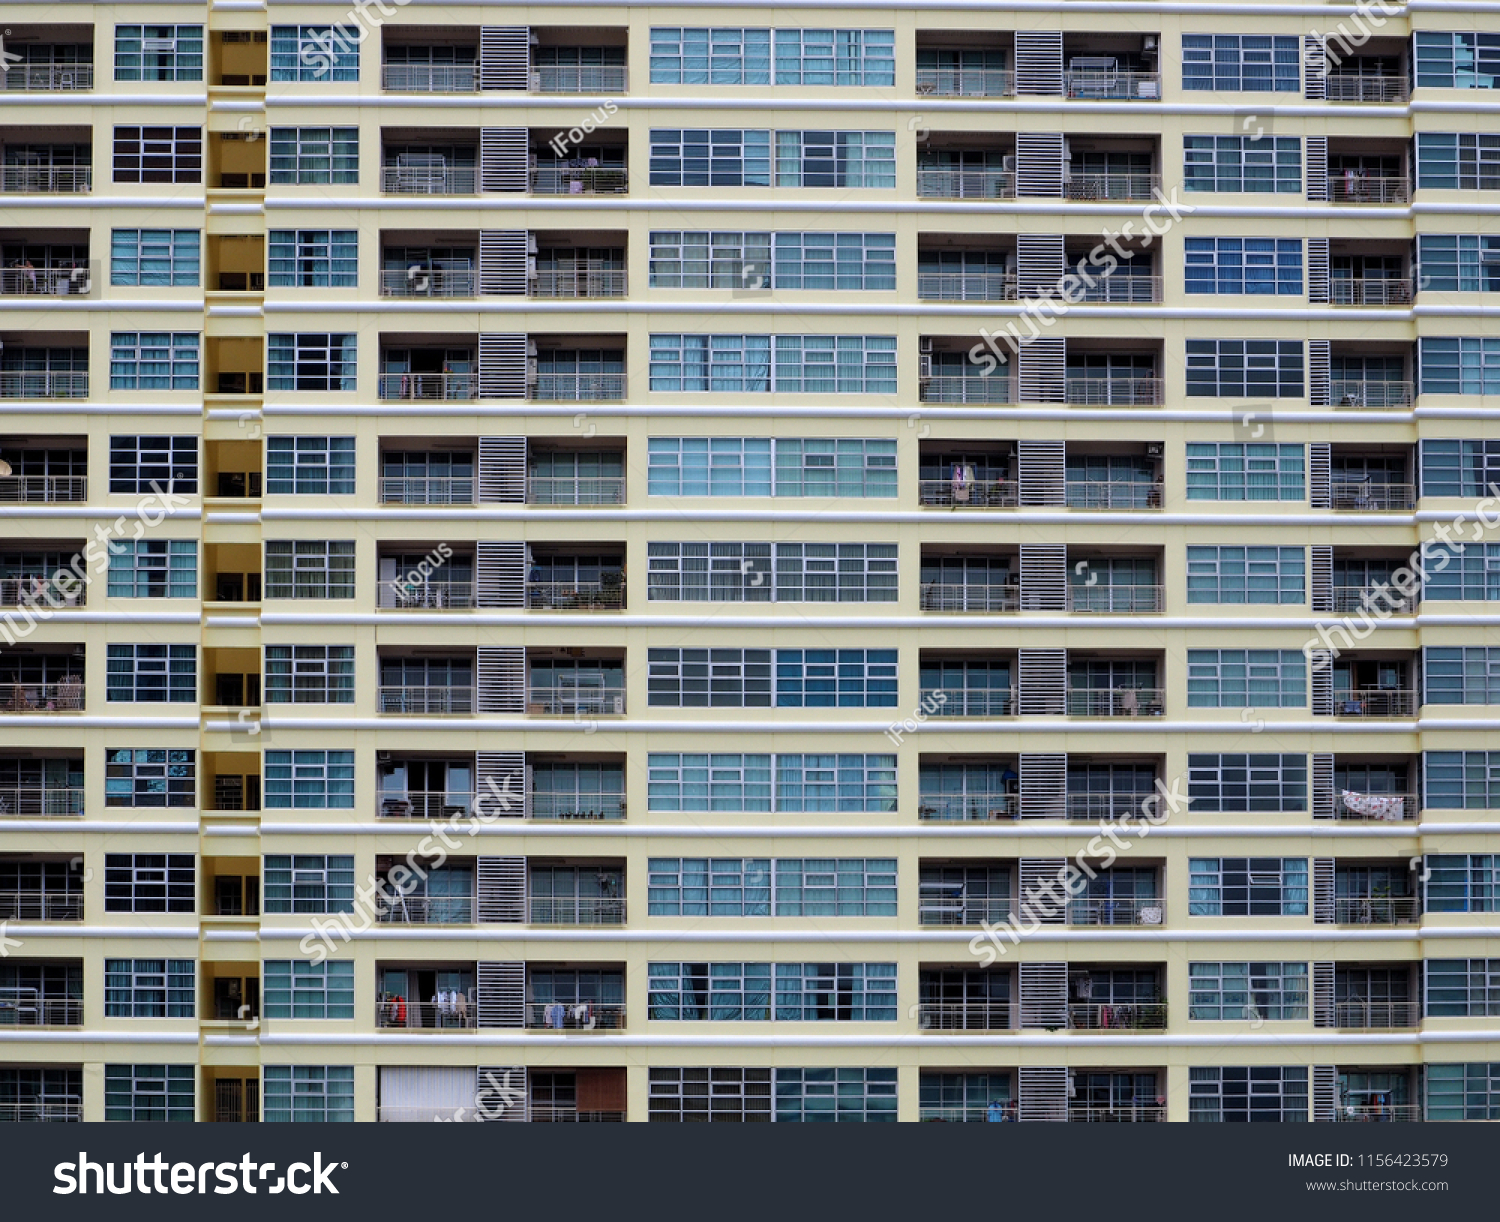 Modern residential building facade with balconies